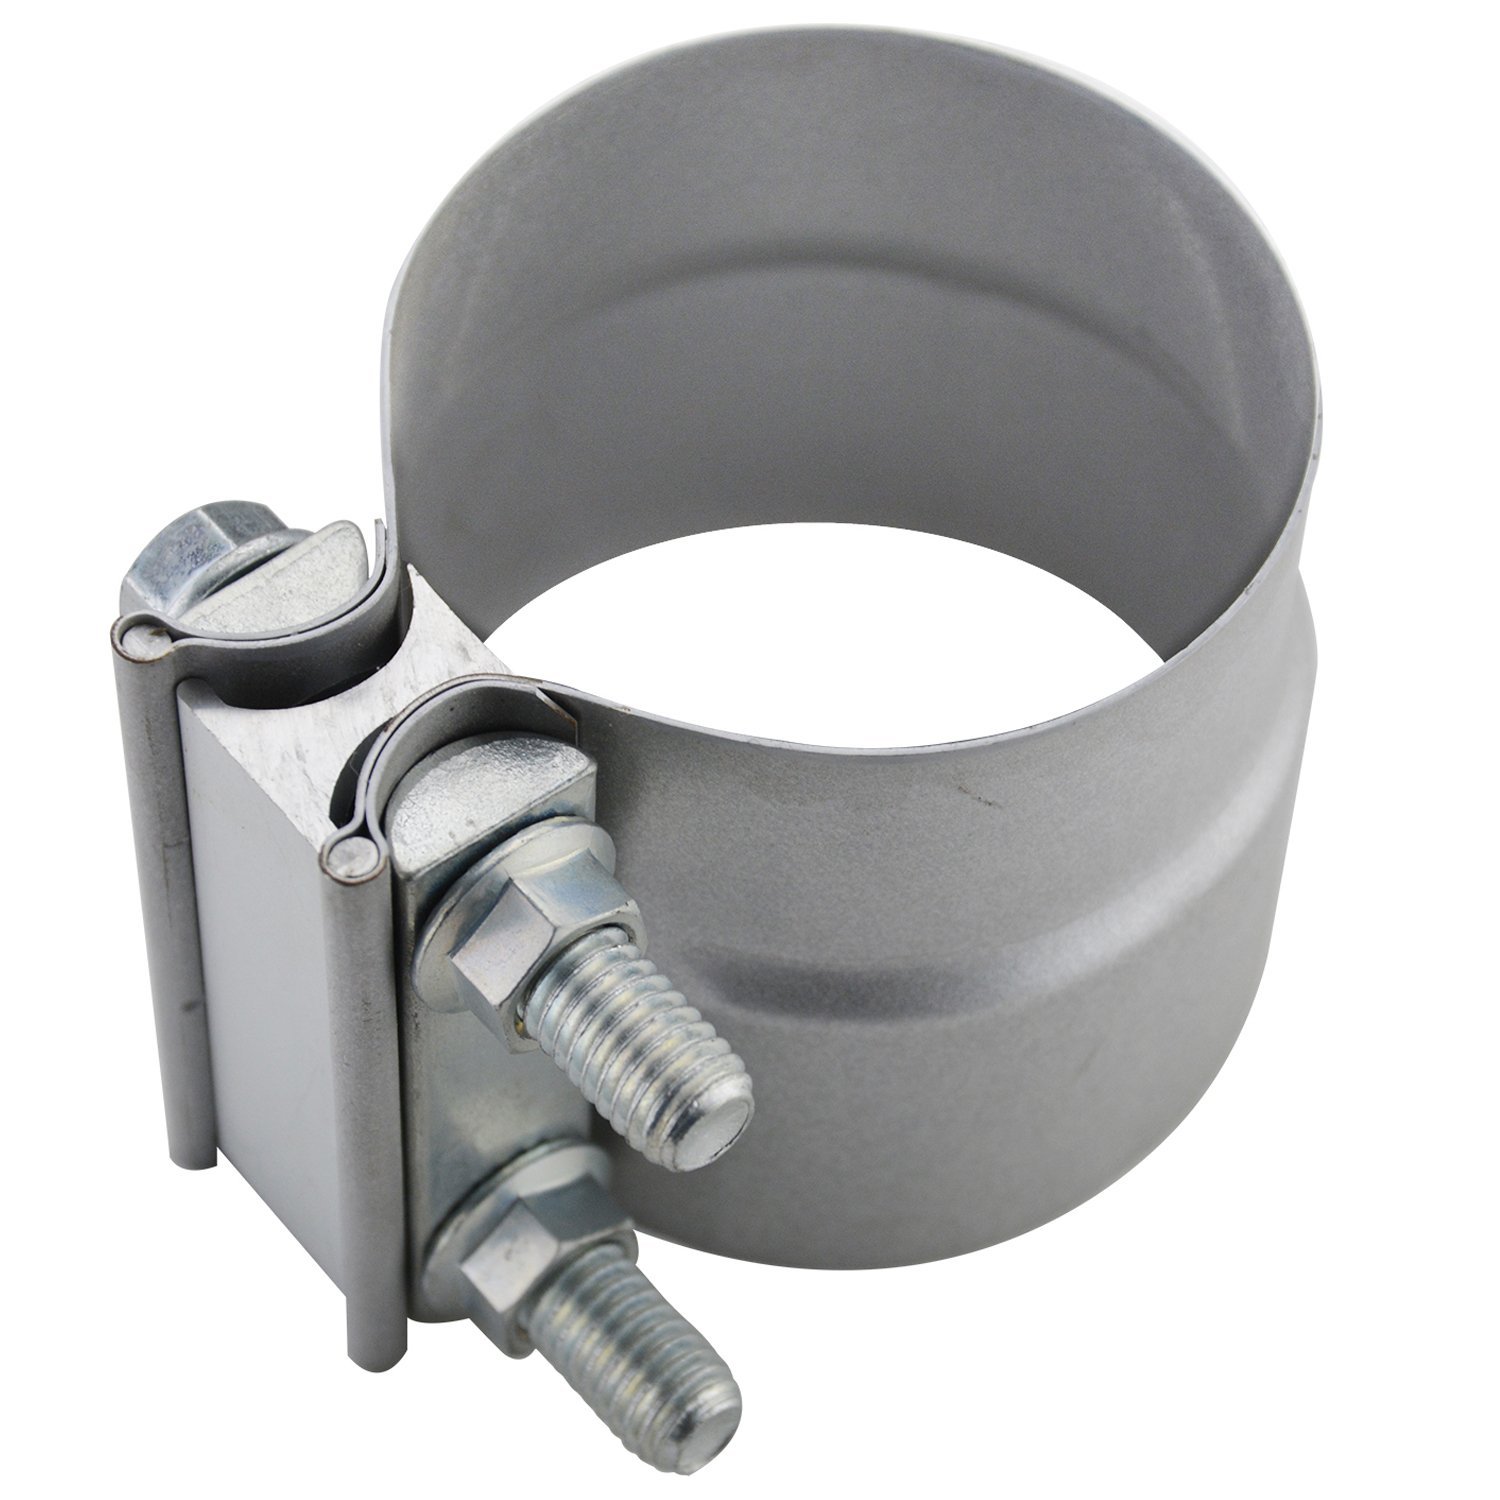 2.5 Lap Joint Exhaust Band Clamp - Preformed Aluminized Steel for 2.5 ID to 2.5 OD Exhaust Pipe Connection ROAD FORMER